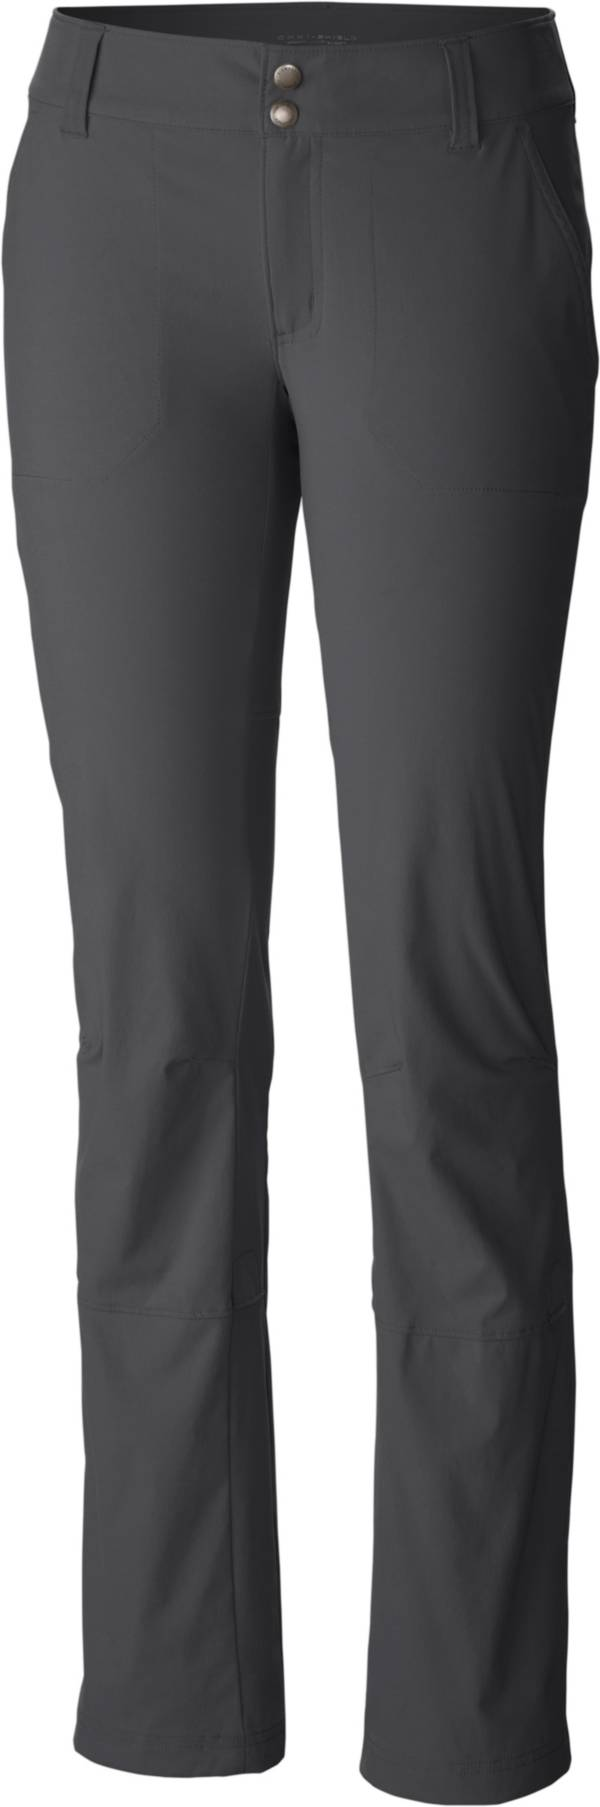 Columbia Women's Saturday Trail Roll-Up Pants product image